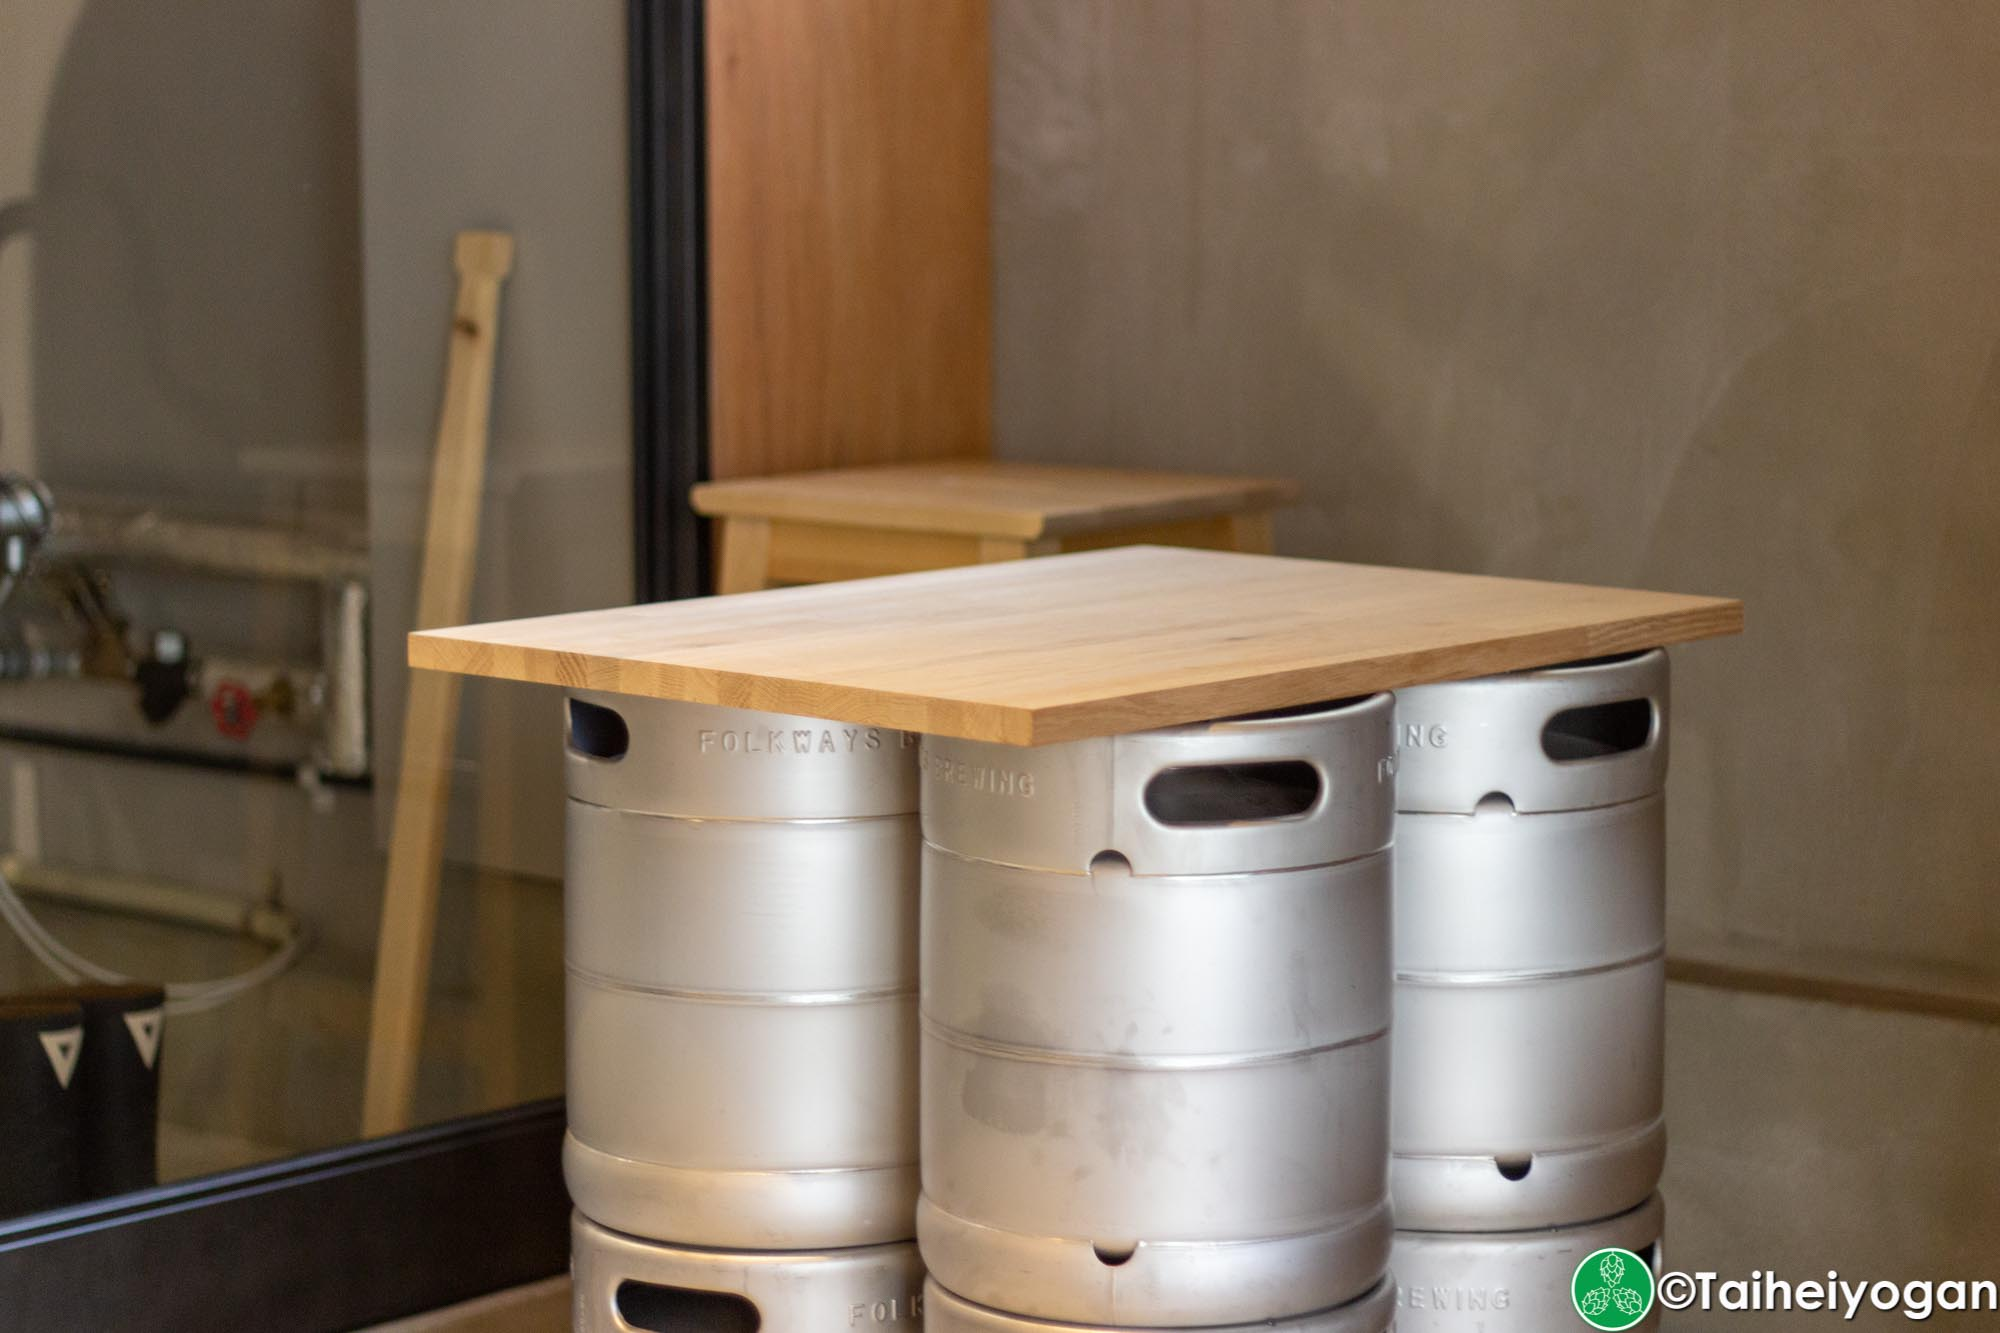 Folkways Brewing - Interior - Seating